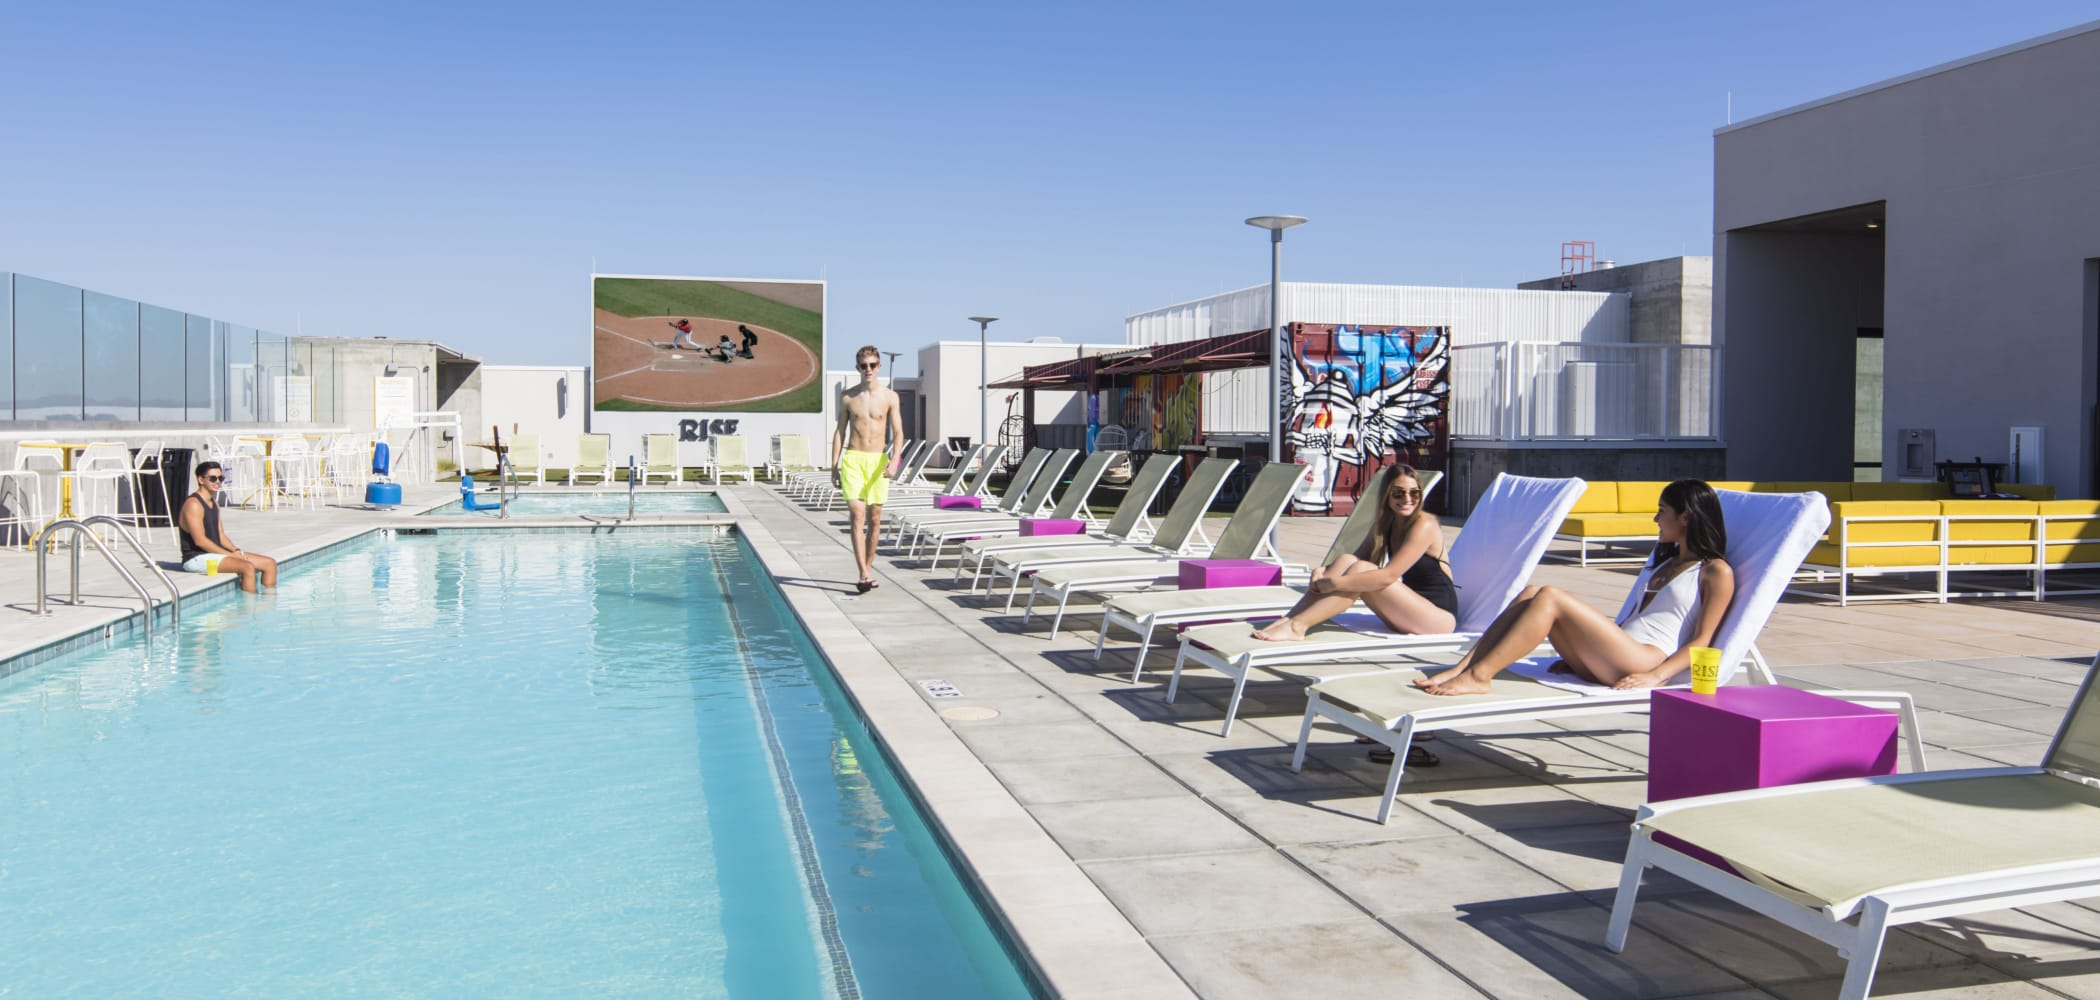 Resort-style swimming pool at RISE on Apache in Tempe, Arizona